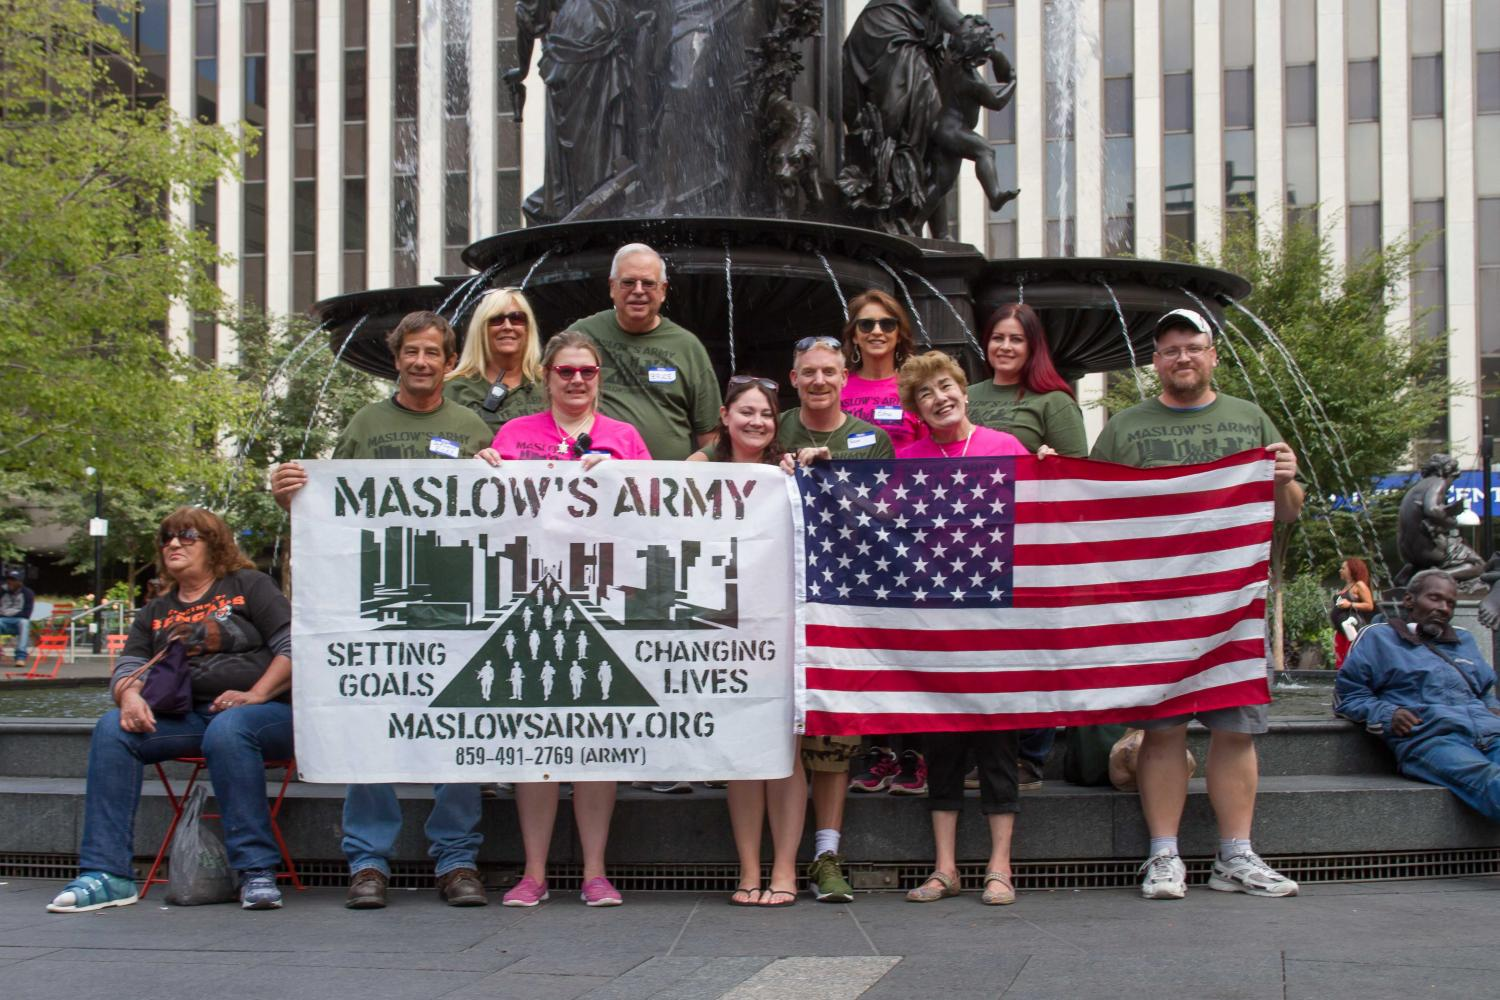 Maslow's Army was formed in October of 2016 by Susan and Samuel Landis (center).